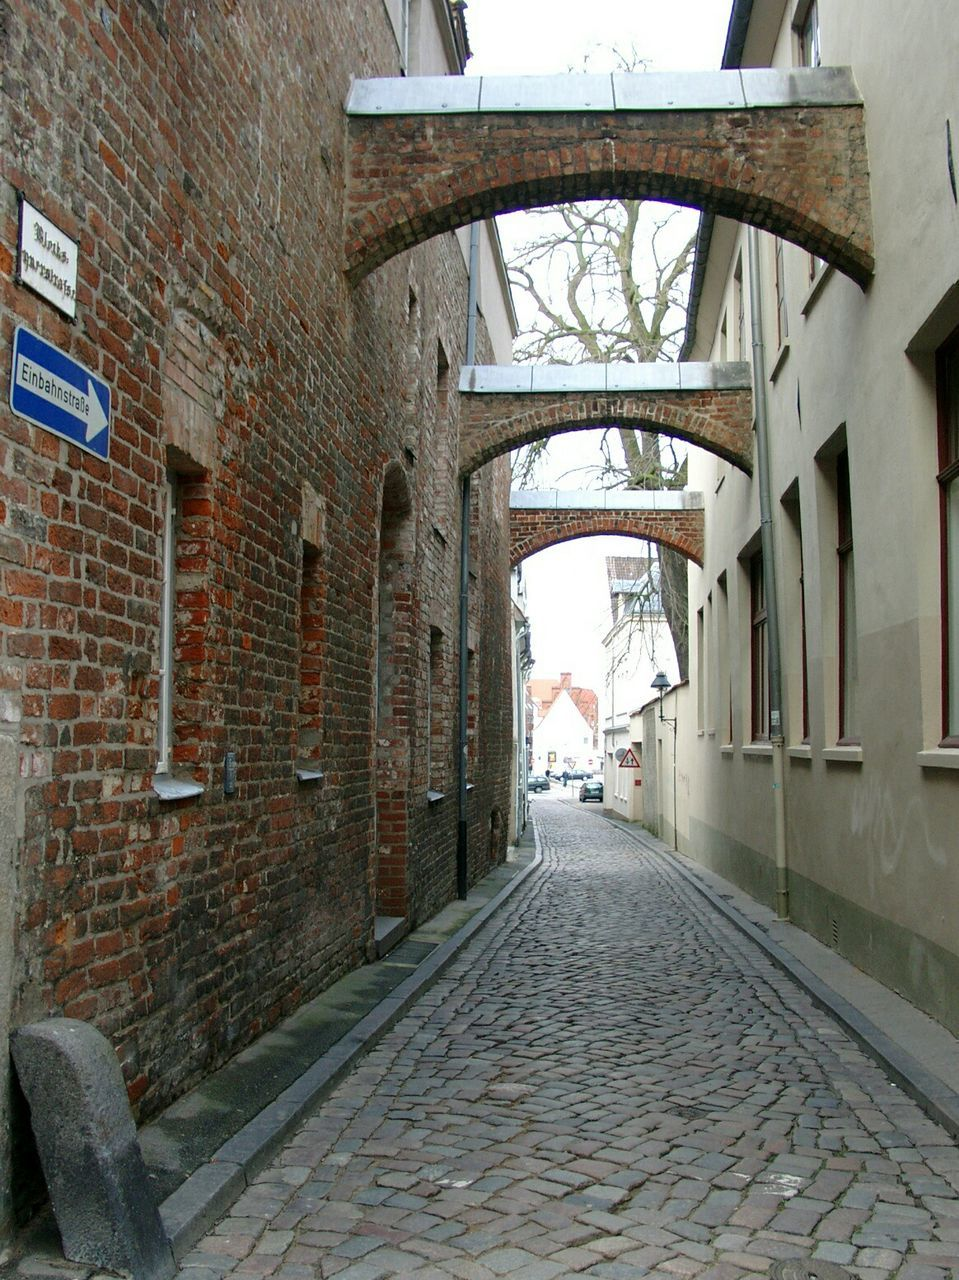 architecture, the way forward, brick wall, built structure, arch, day, no people, building exterior, outdoors, city